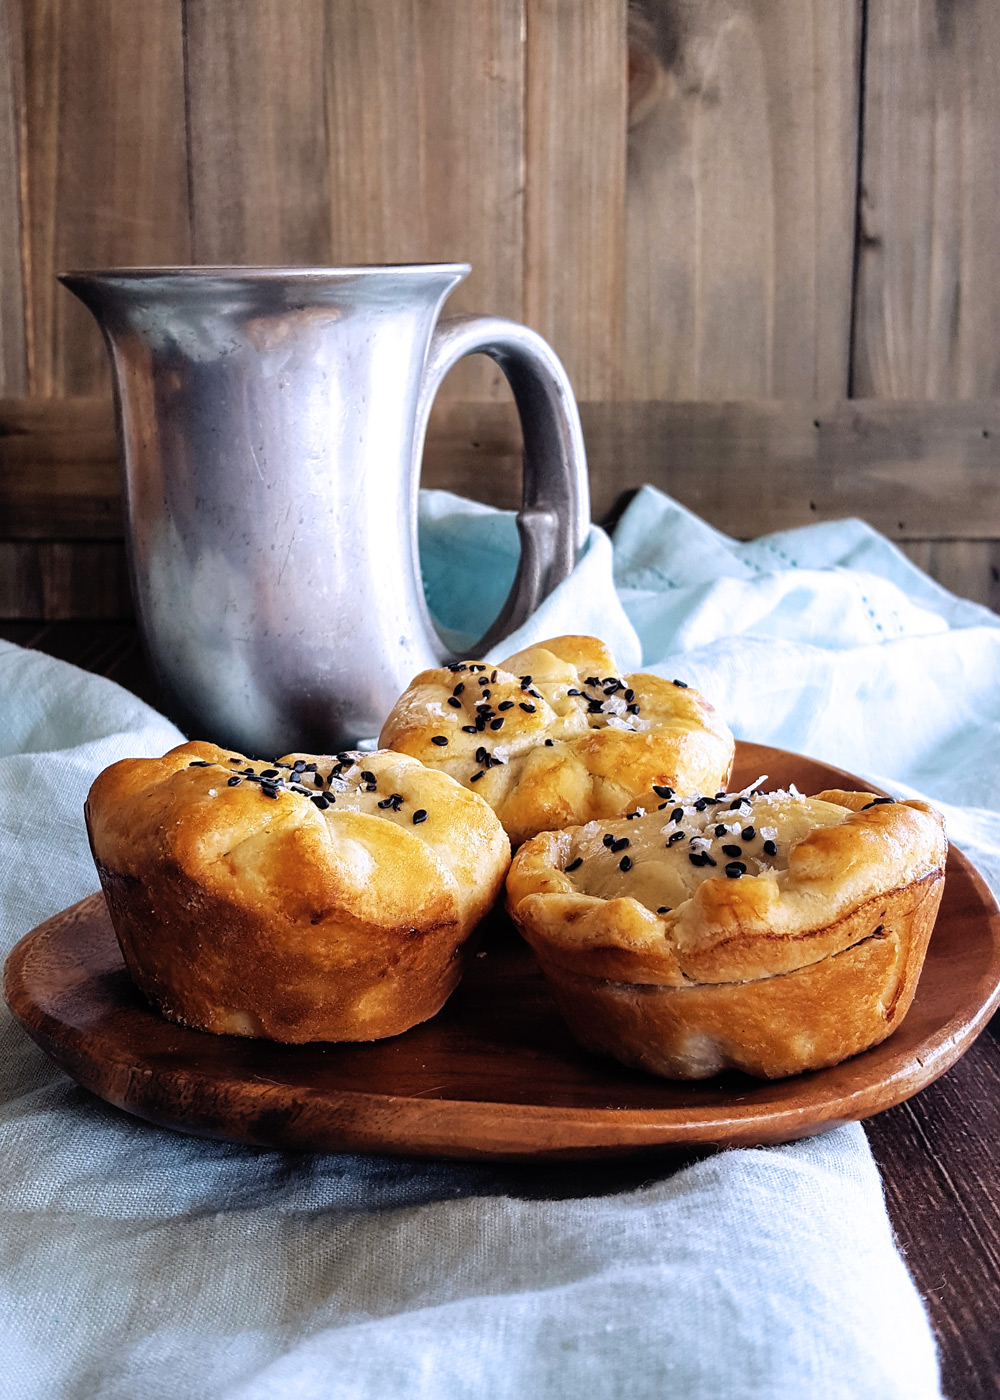 Inspired by Old World recipes, these savory Minced Beef, Bacon & Cheese Hand Pies are rich with sharp cheddar, dried cherries, and fresh thyme and tarragon for a delicious addition to any picnic or potluck. #handpie #pie #pastry #larp #picnic | FeastInThyme.com